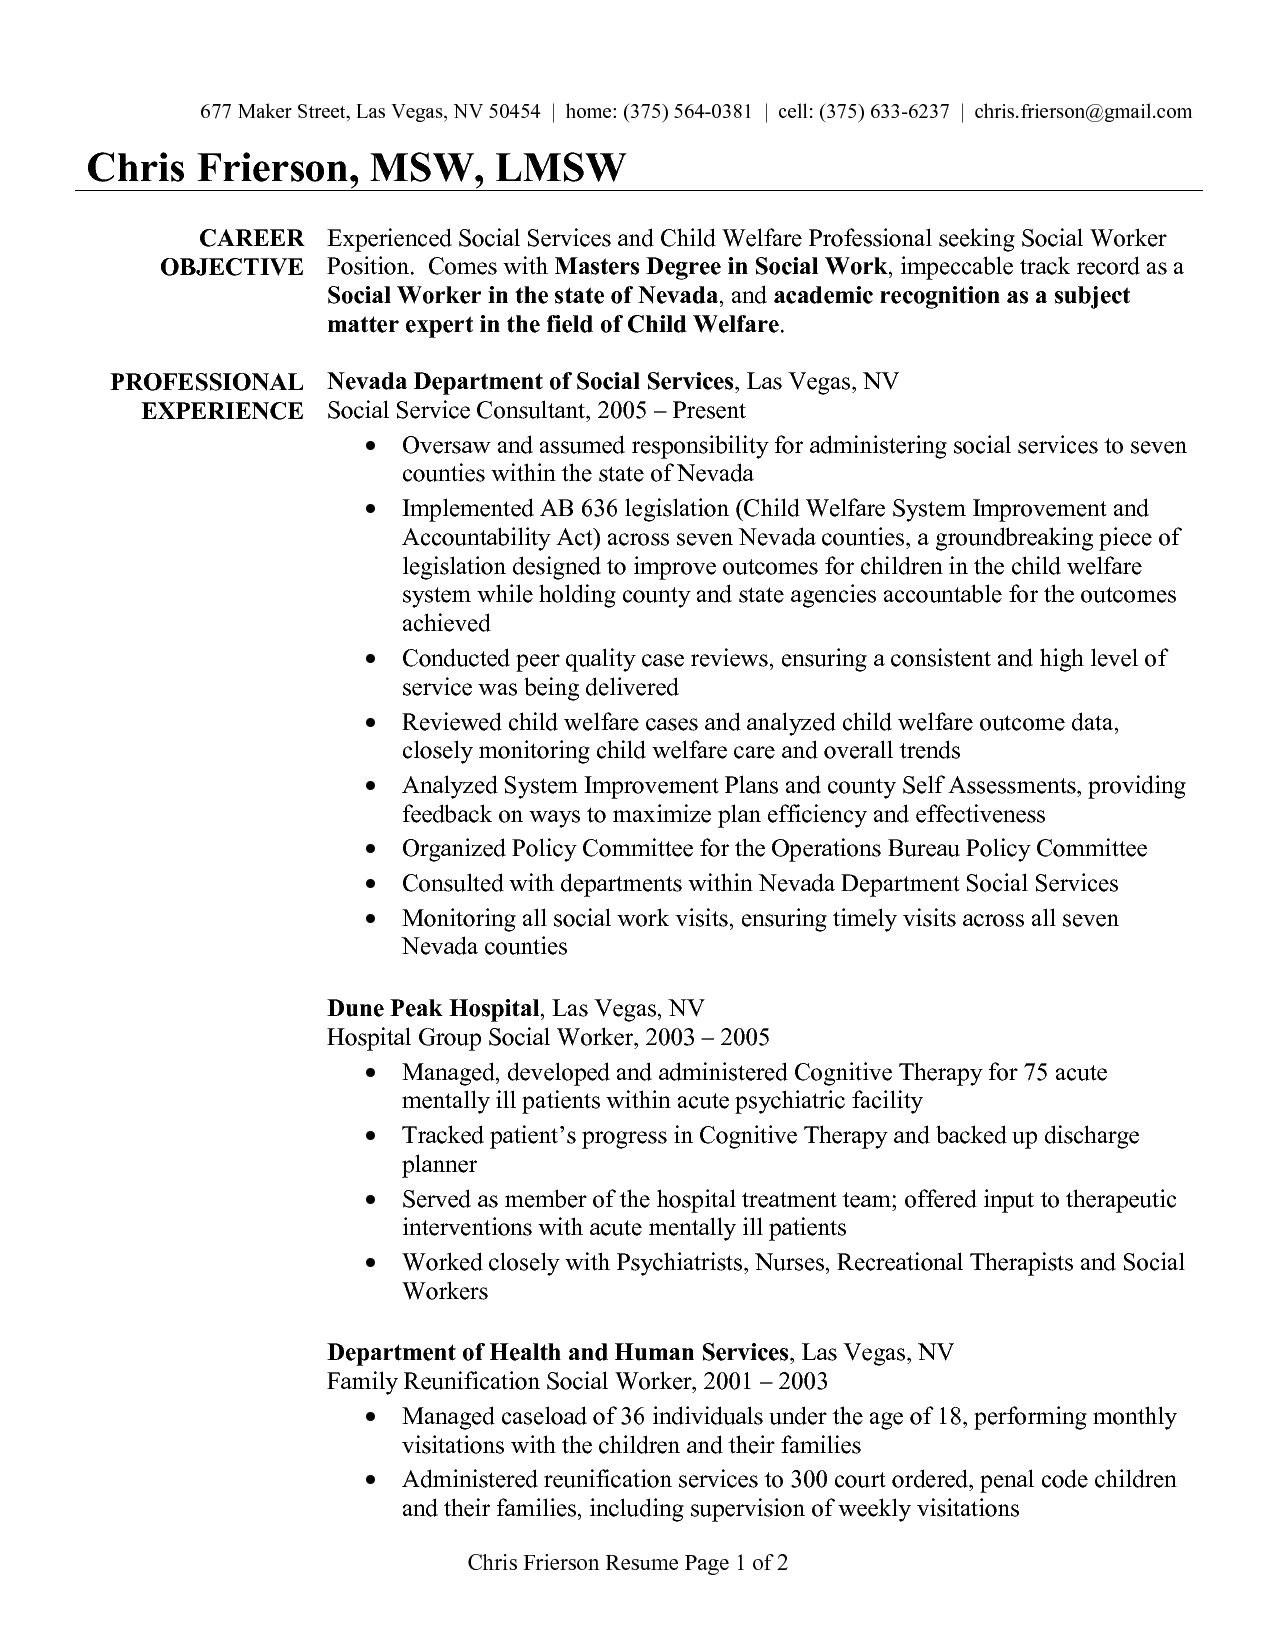 Best Resume Examples Gorgeous Social Work Resume Examples  Social Worker Resume Sample  Projects